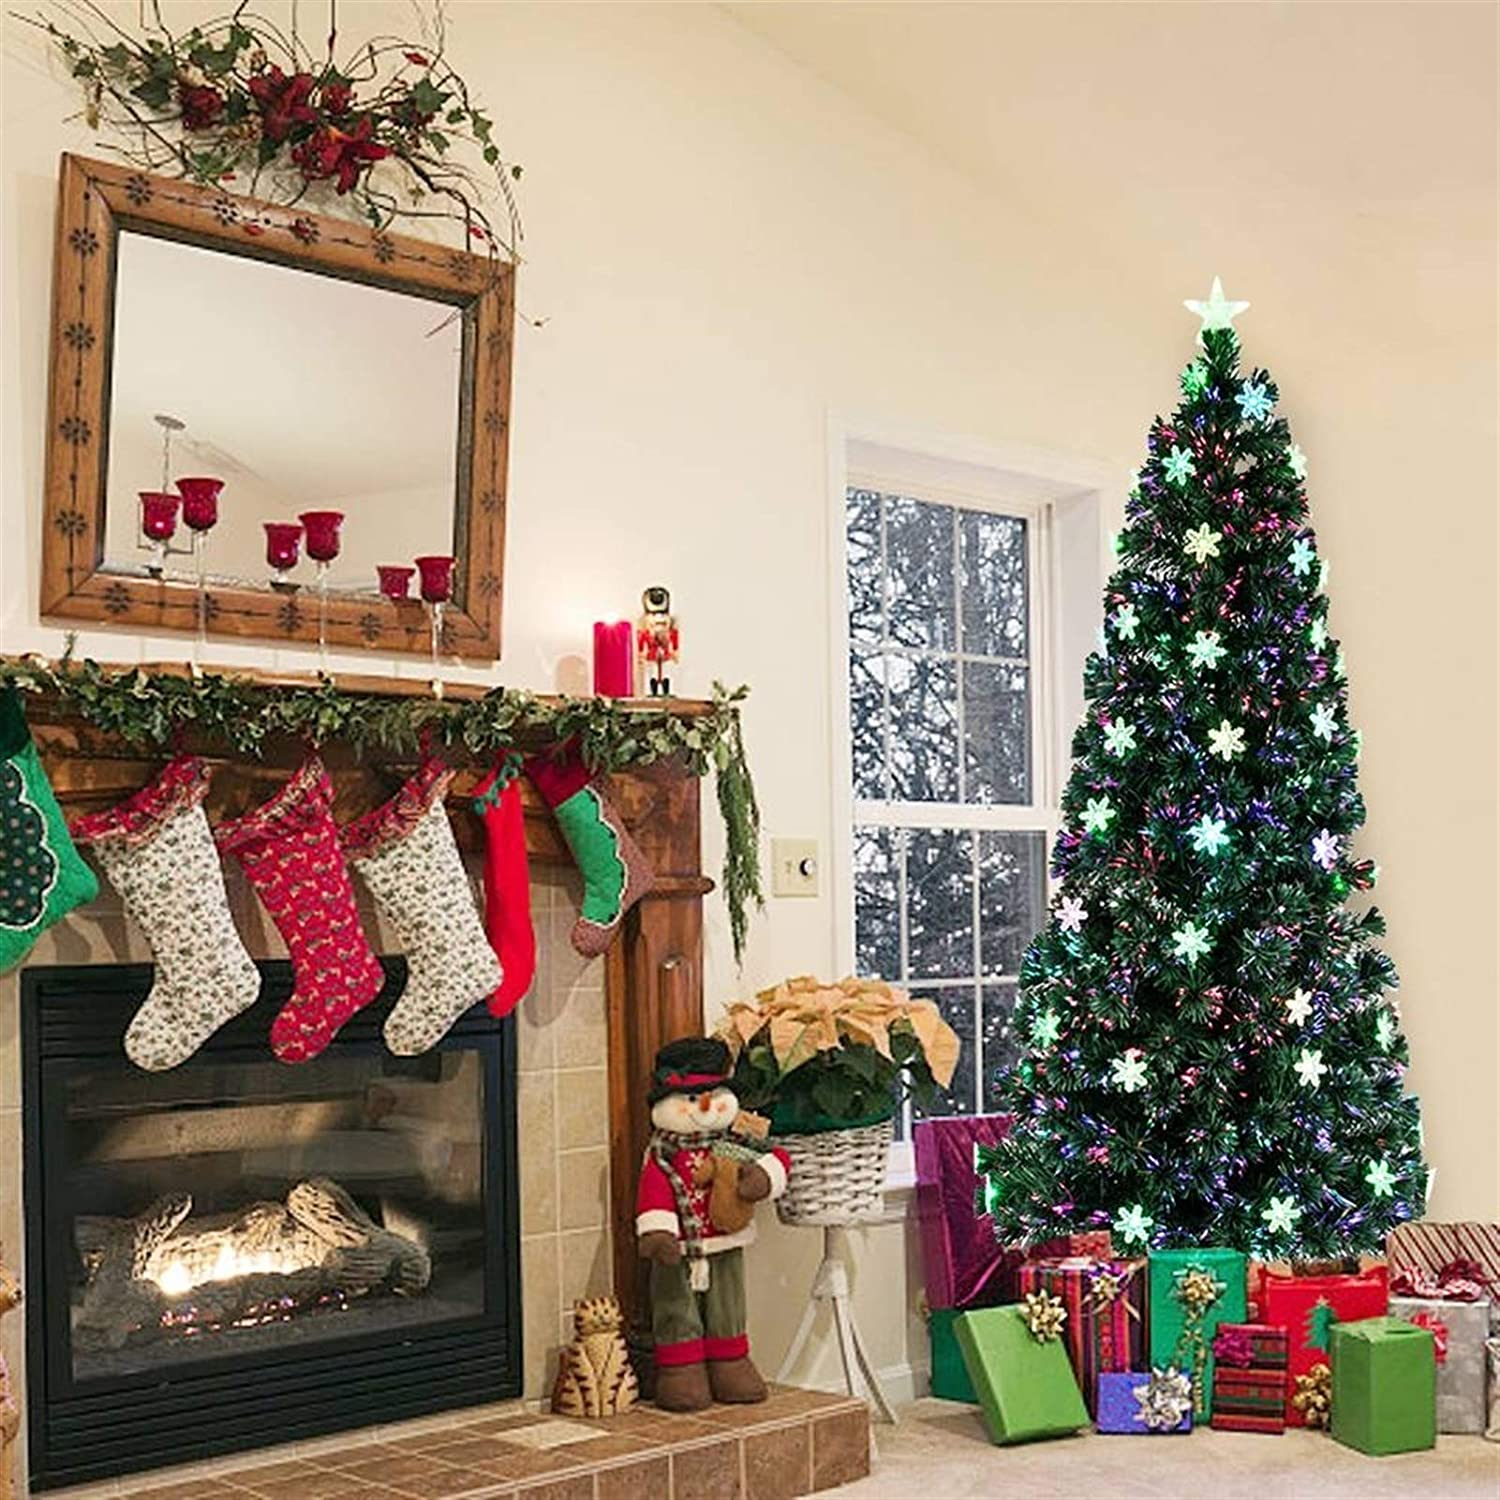 LGXXYF Ranking TOP19 Now free shipping Artificial Christmas Tree with Full Metal